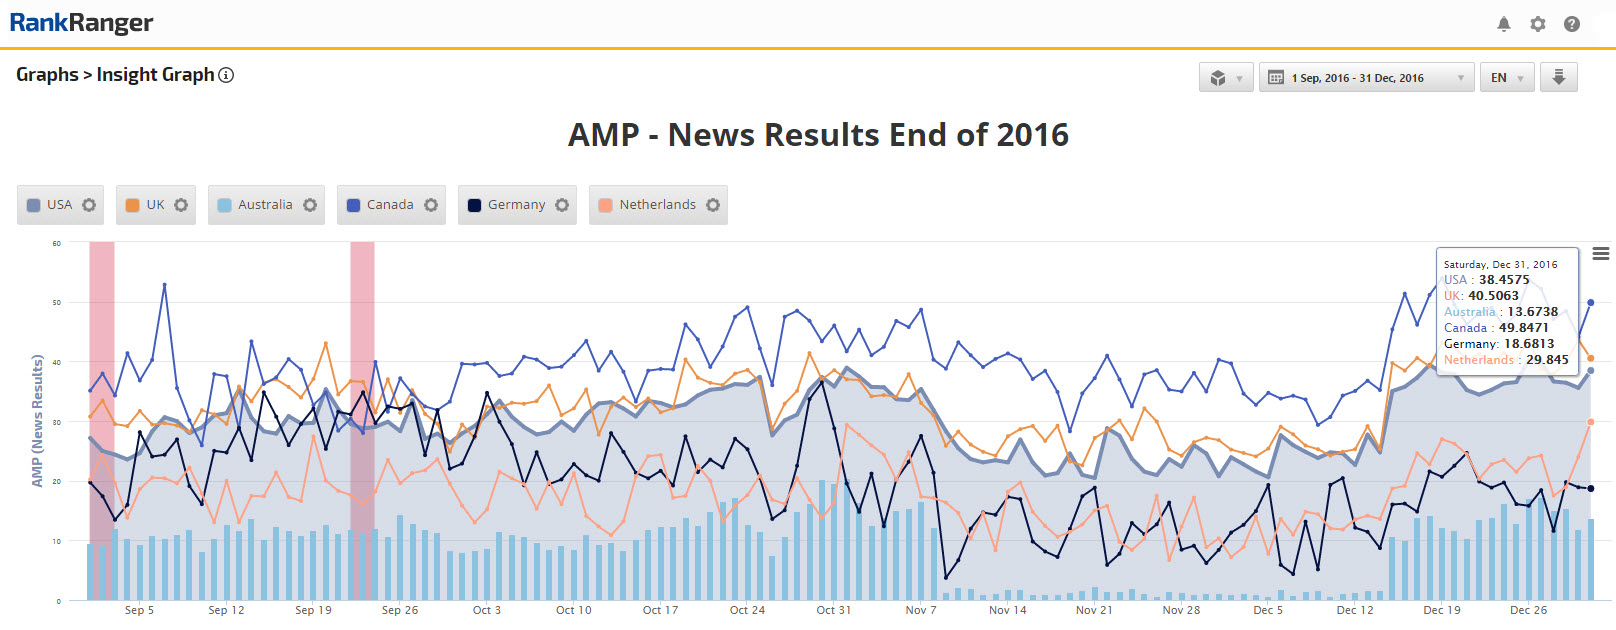 AMP in New Box End of 2016 Data